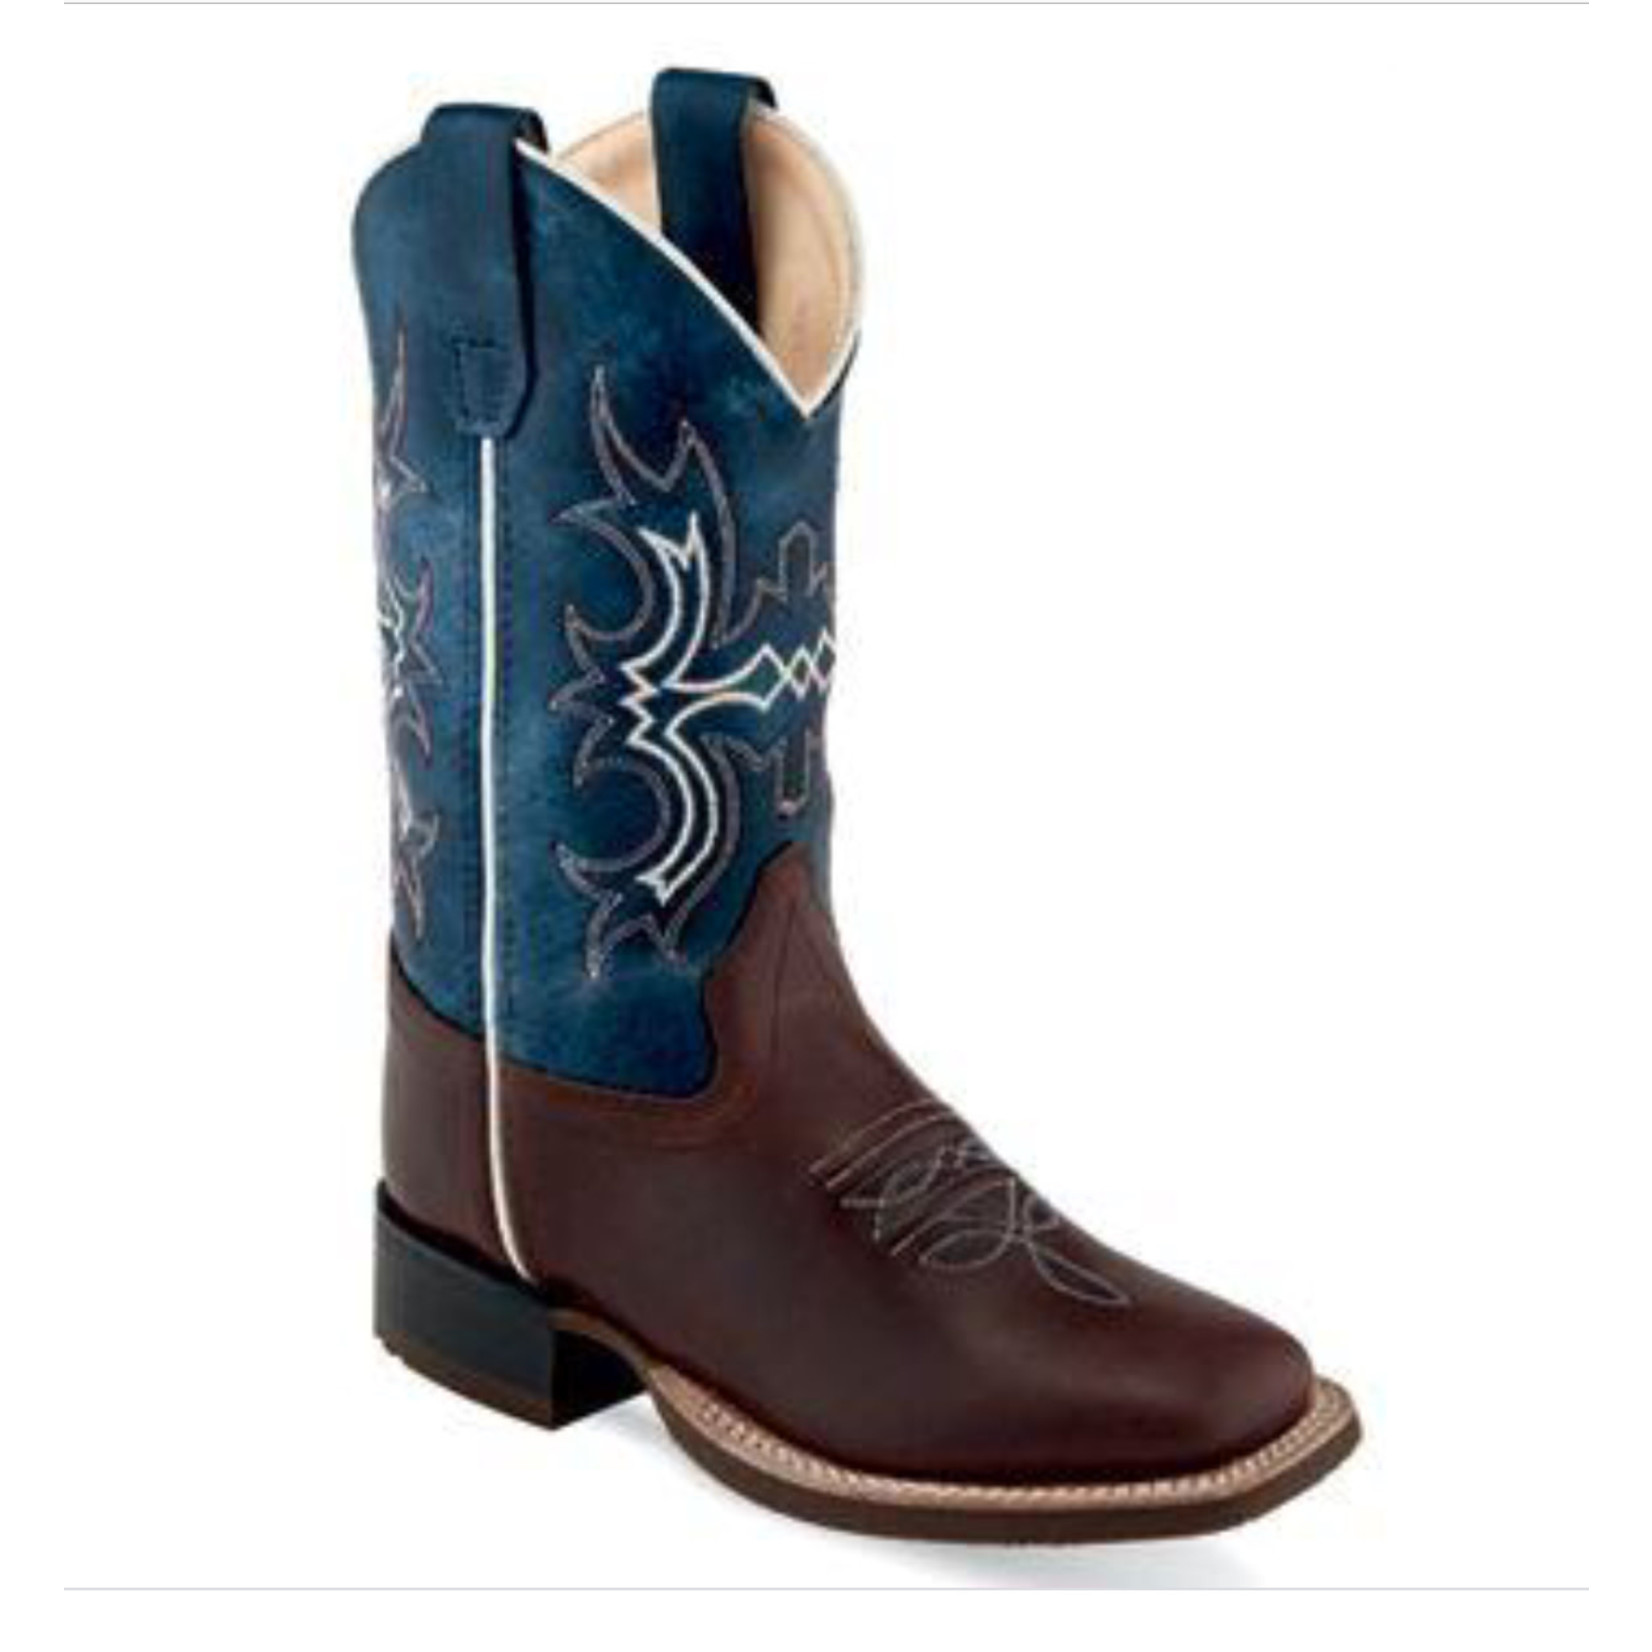 Old west Old West Youth Chocolate & Blue Square Toe Cowboy Boot BSY1914